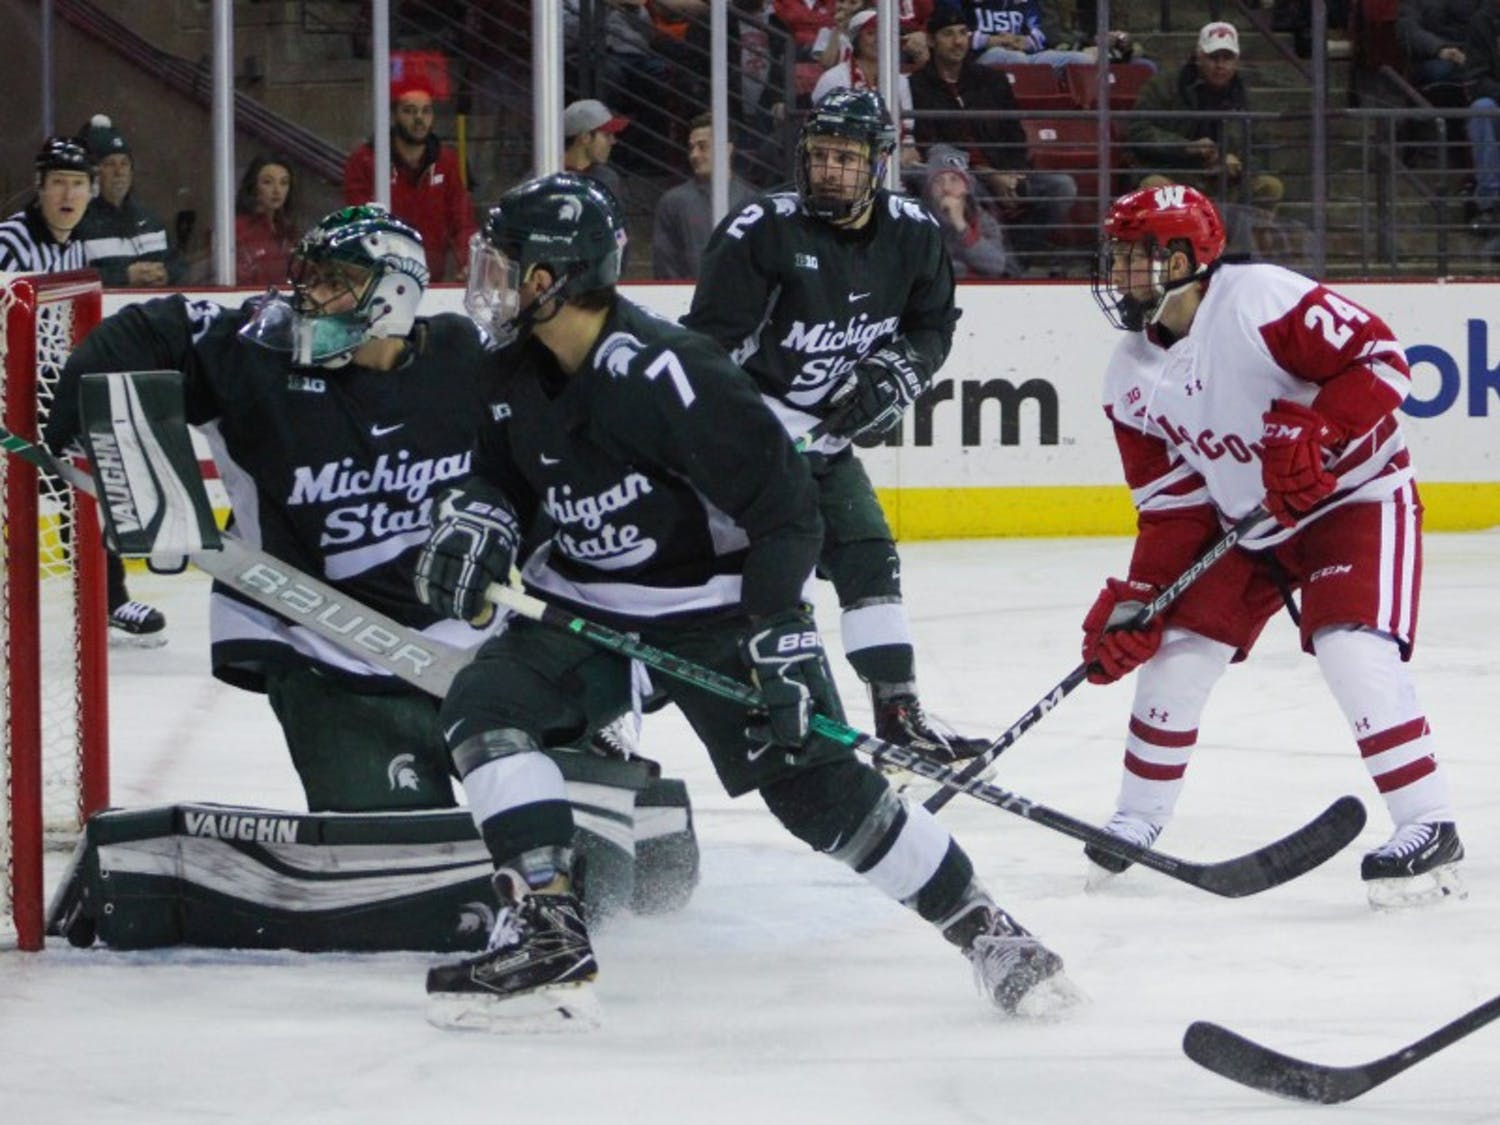 Sophomore forward Sean Dhooghe scored two goals, the second with just 26.2 seconds remaining in overtime, to give Wisconsin a needed three points in the Big Ten standings